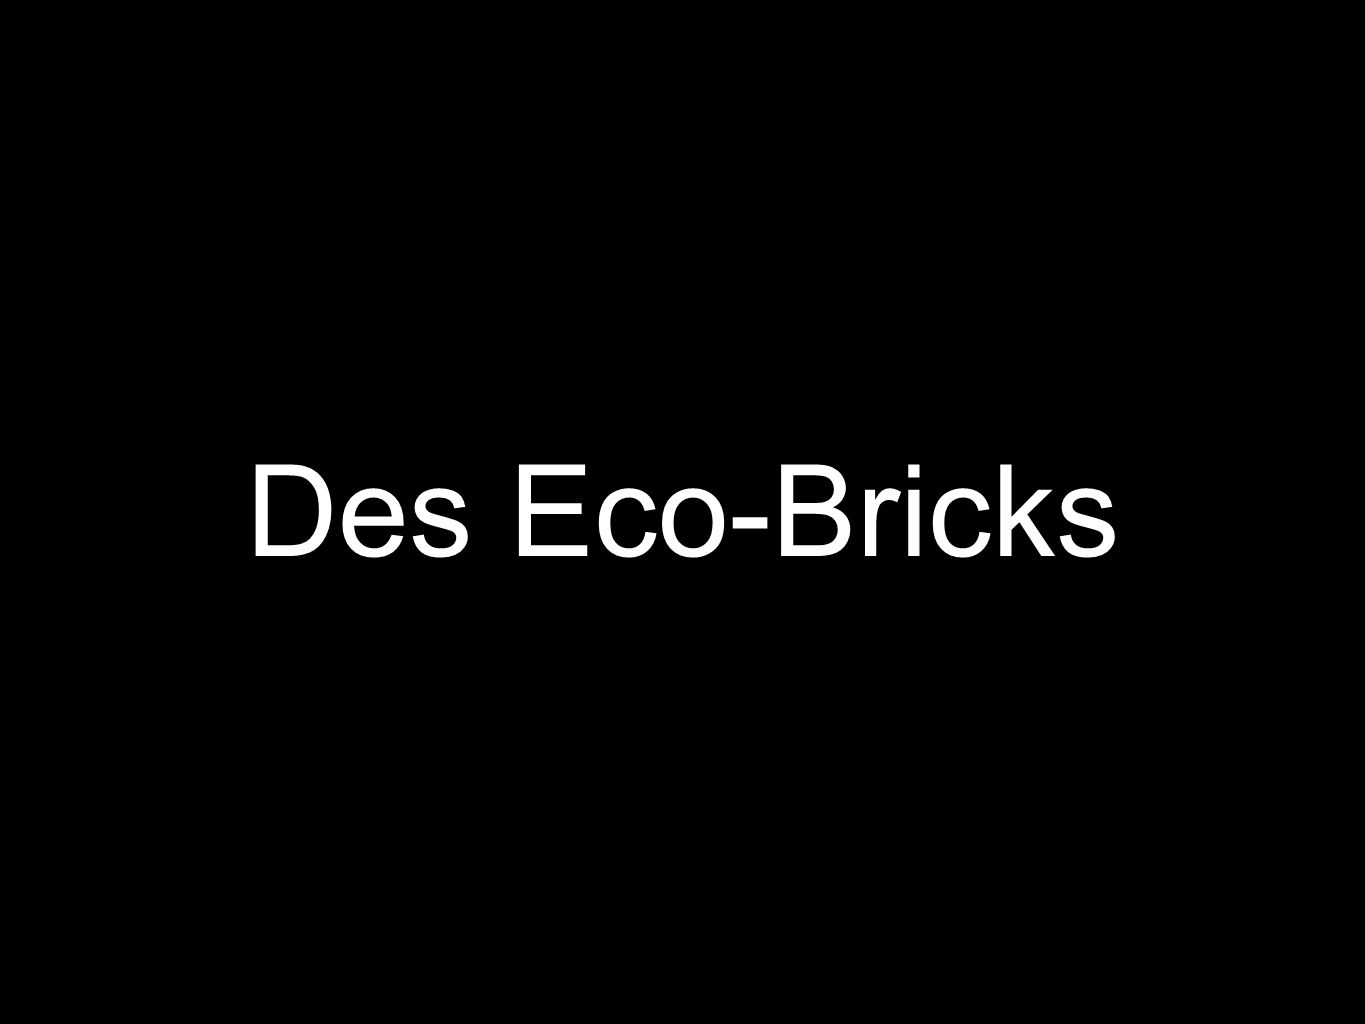 Des Eco-Bricks